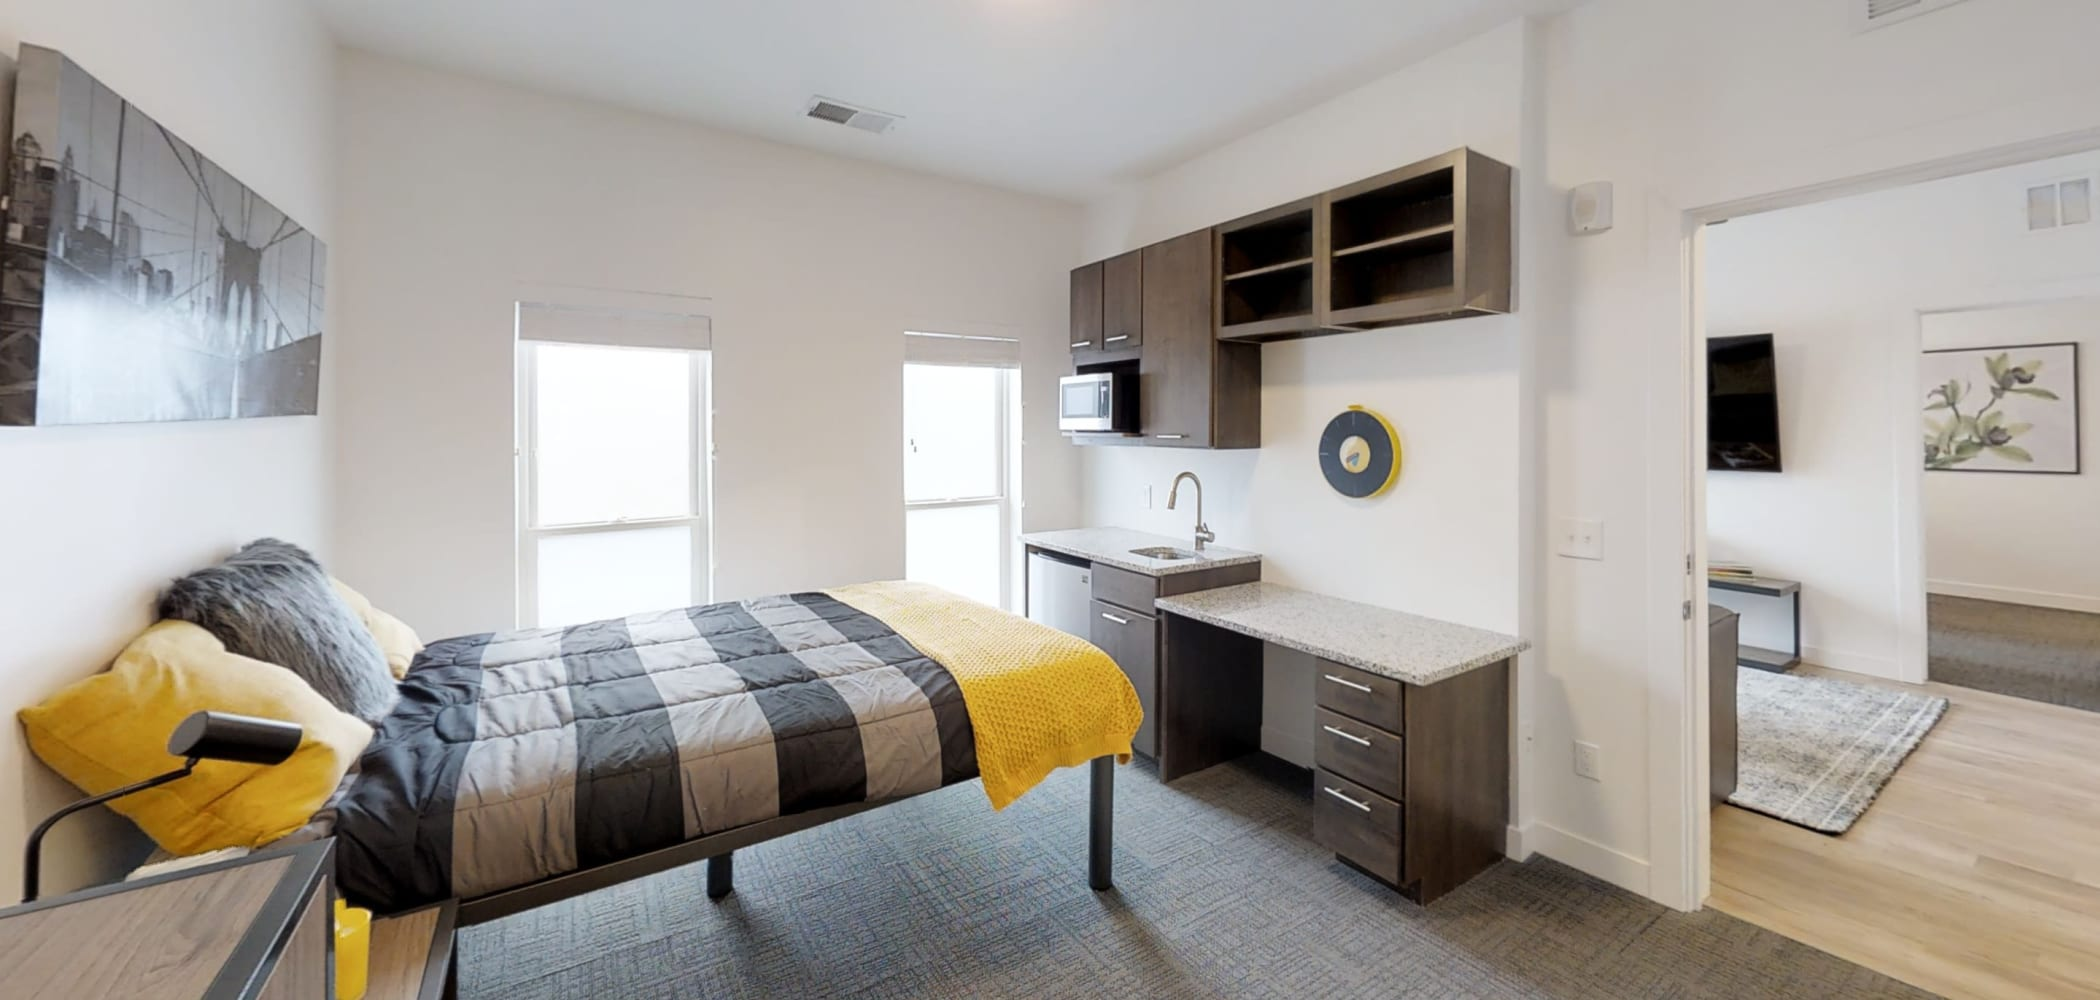 Tons of extra space to relax and study in the bedroom at The View on Pavey Square in Columbus, Ohio